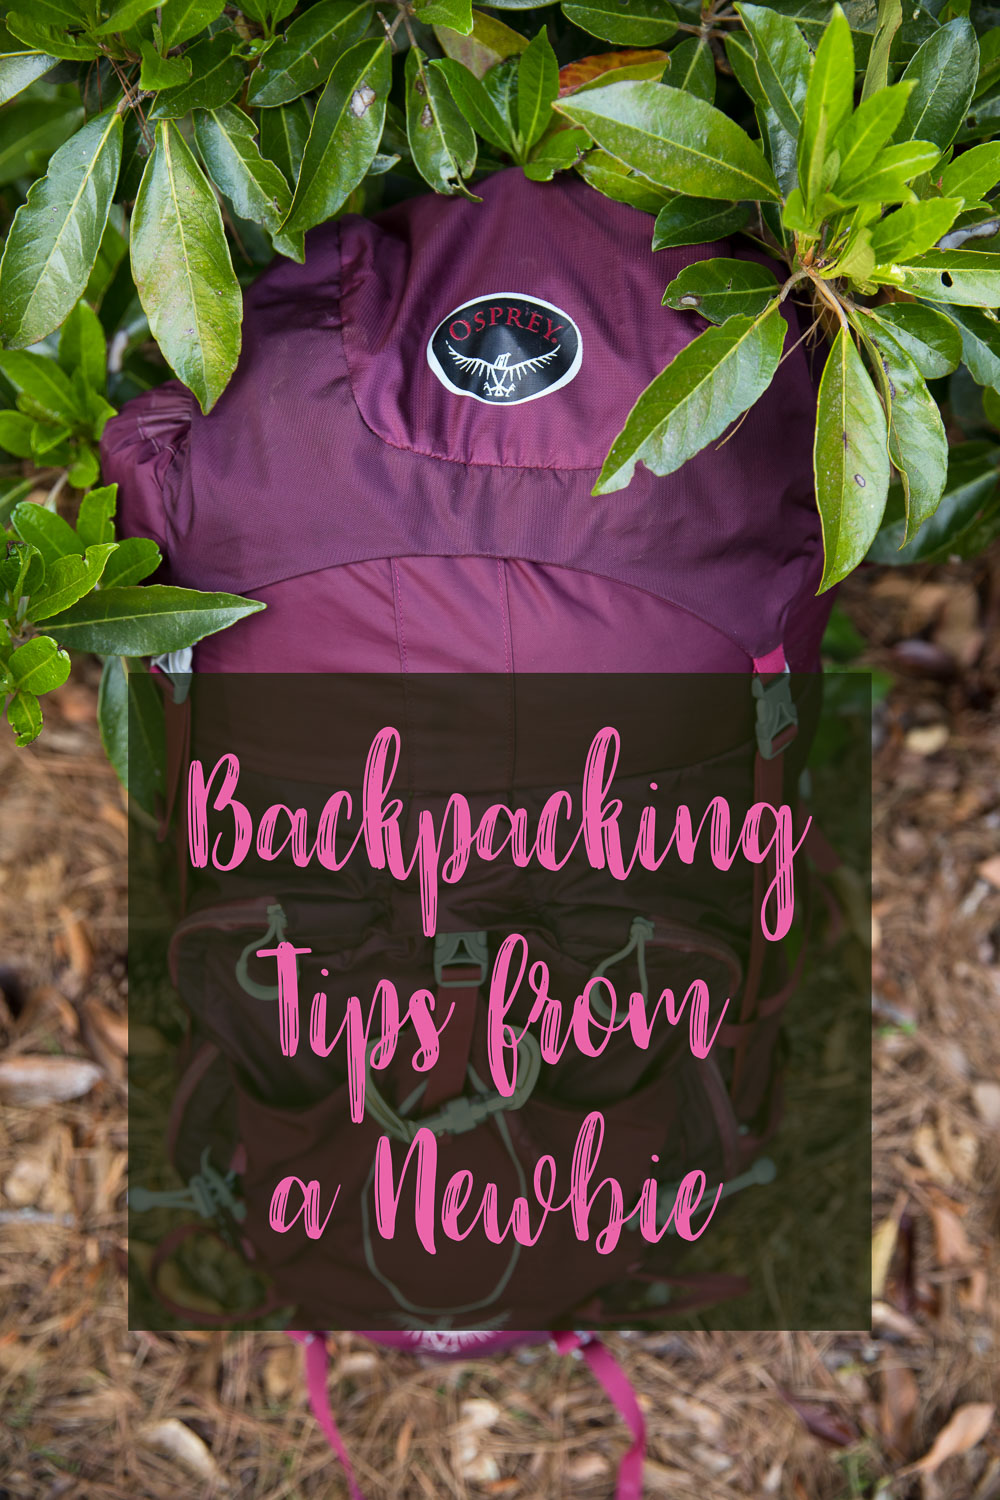 Backpacking Tips and Lessons Learned from a Newbie! Great tips for hiking the Appalachian Trail